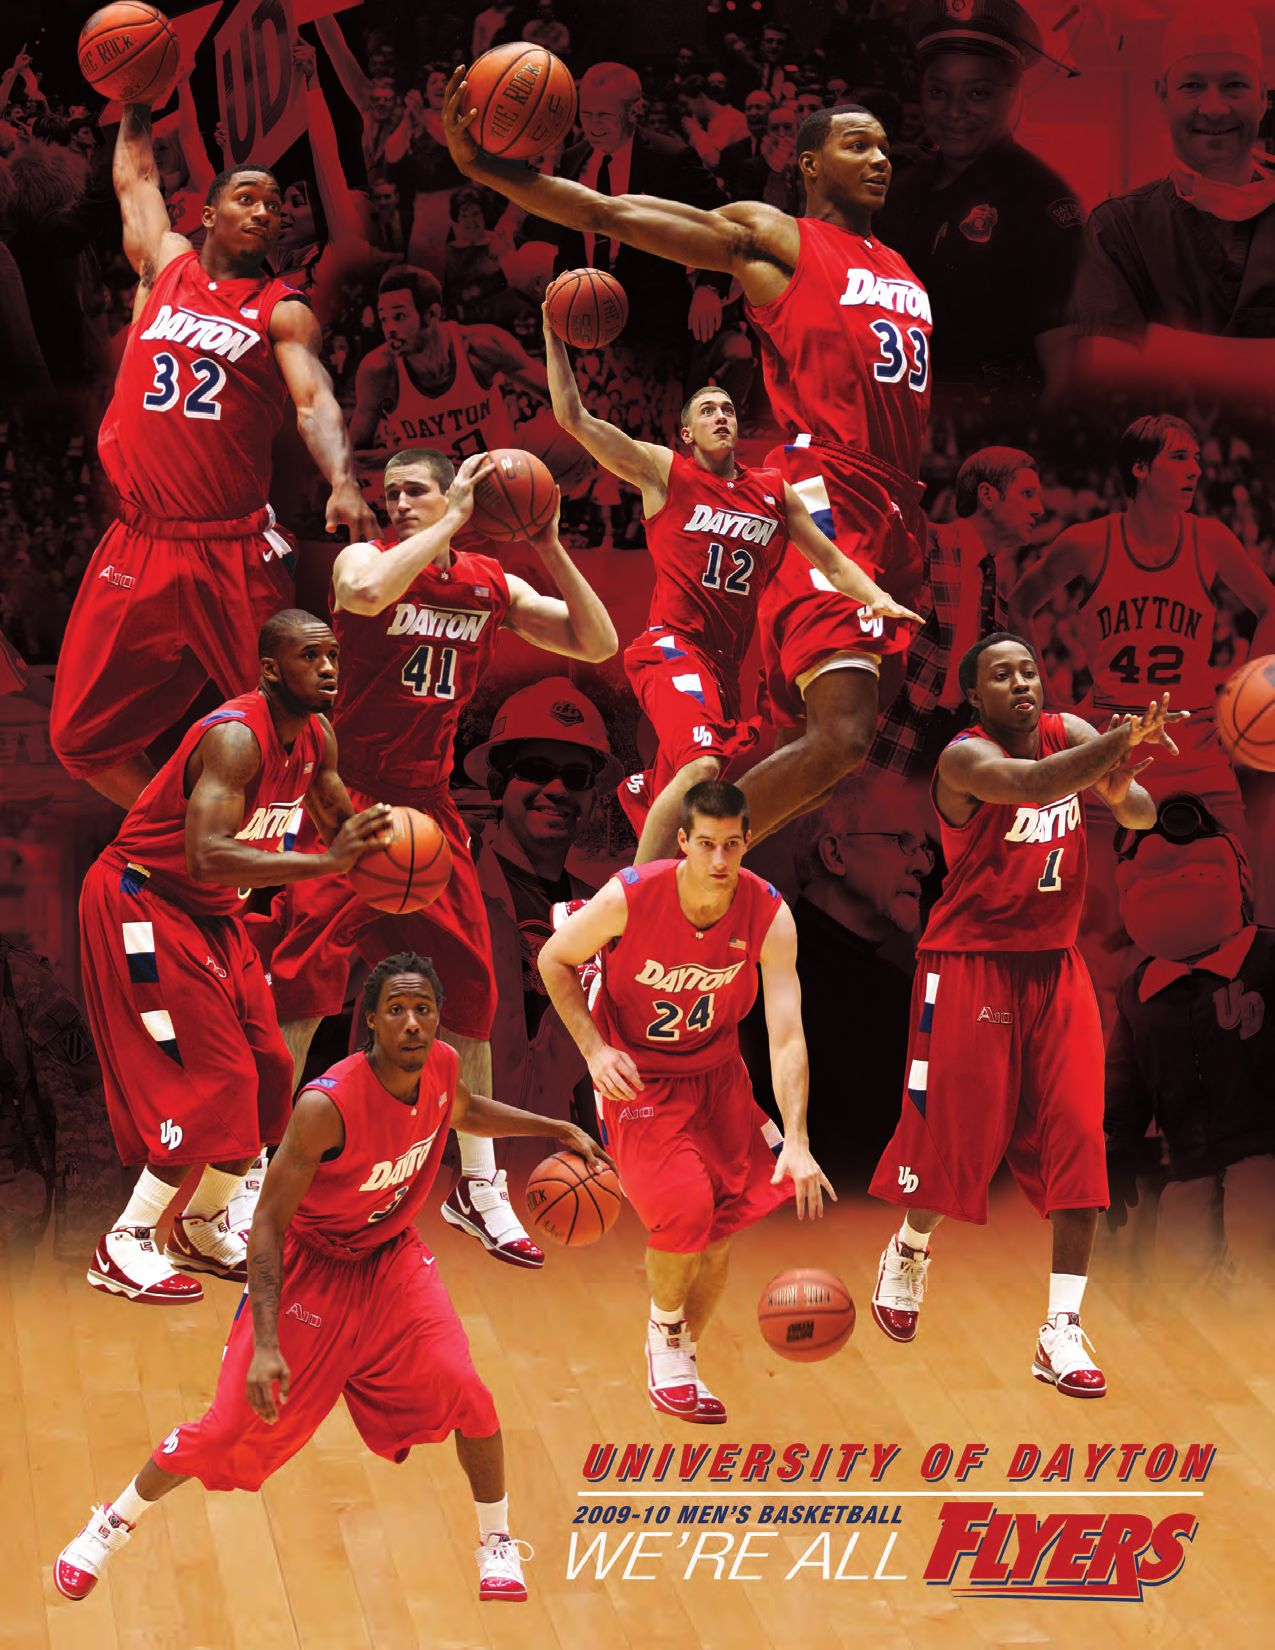 university of dayton men's basketball media guide by university of